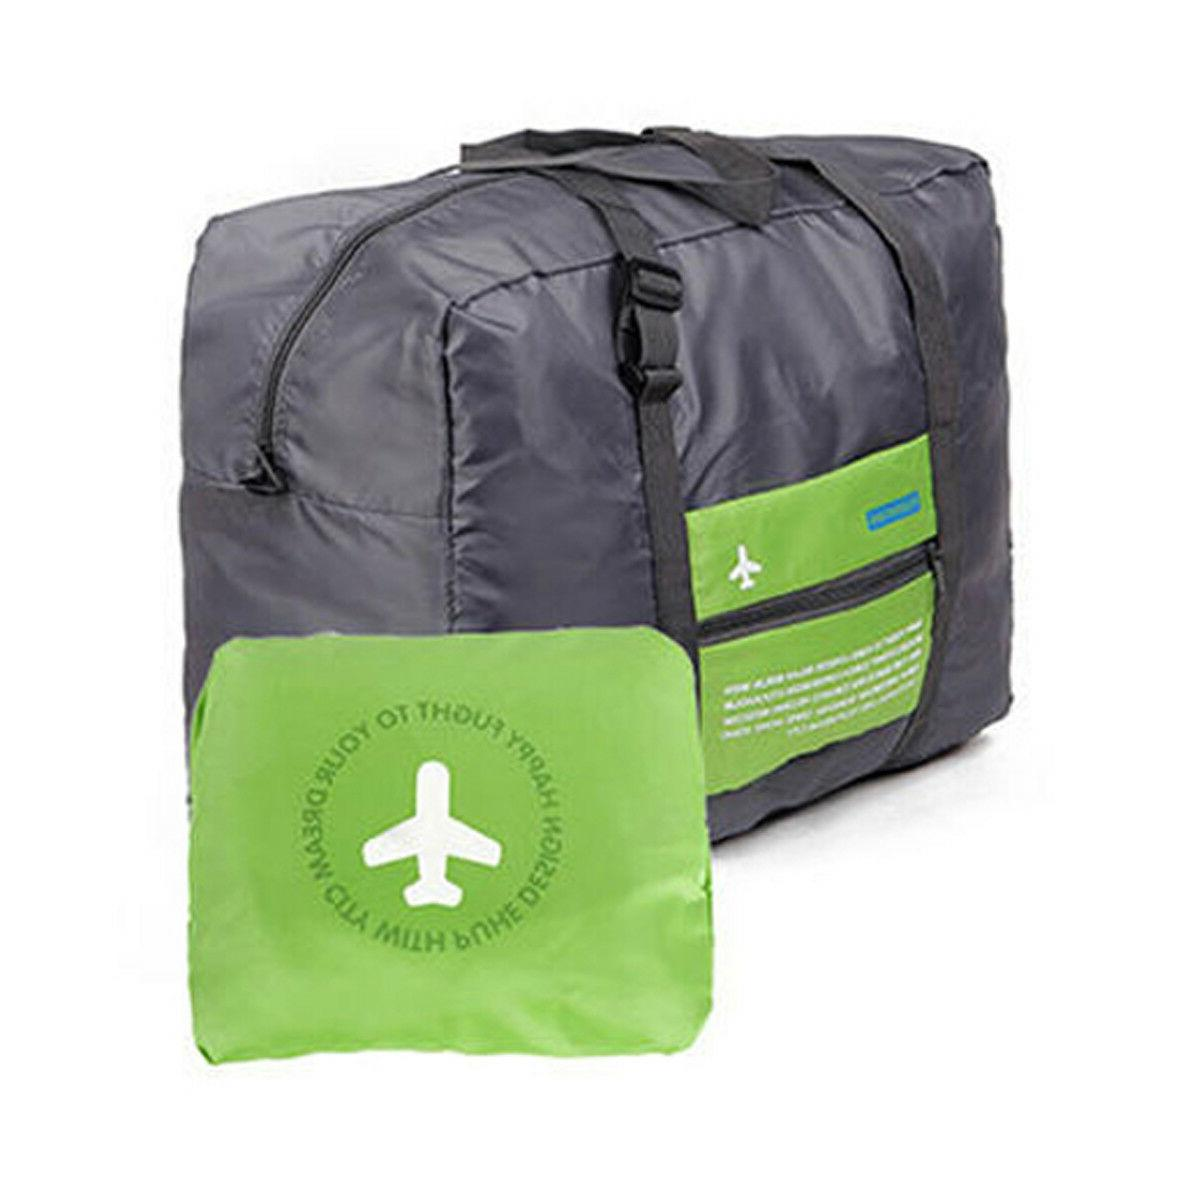 Travel Size Luggage Carry-On Bag Green